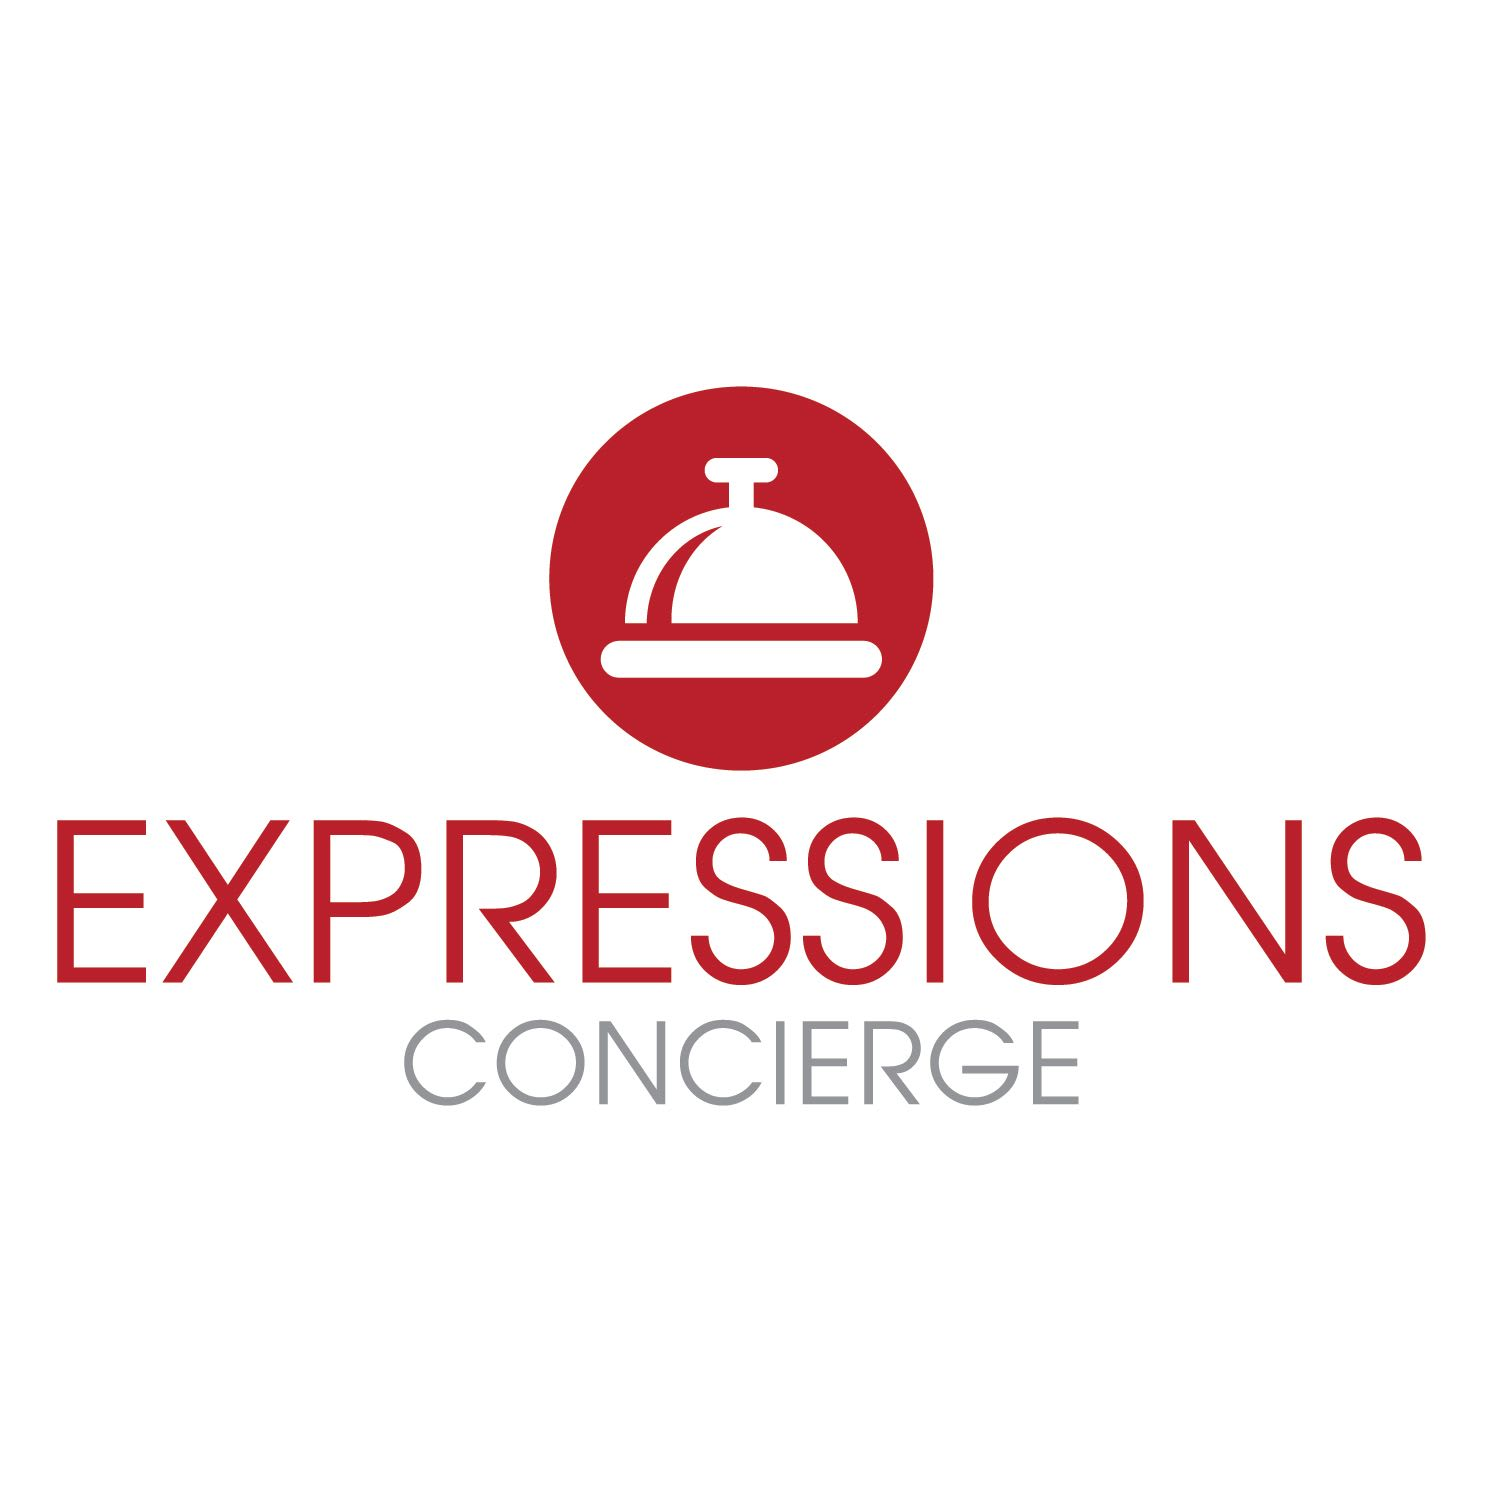 Expressions concierge services at Discovery Village At Dominion in San Antonio, Texas